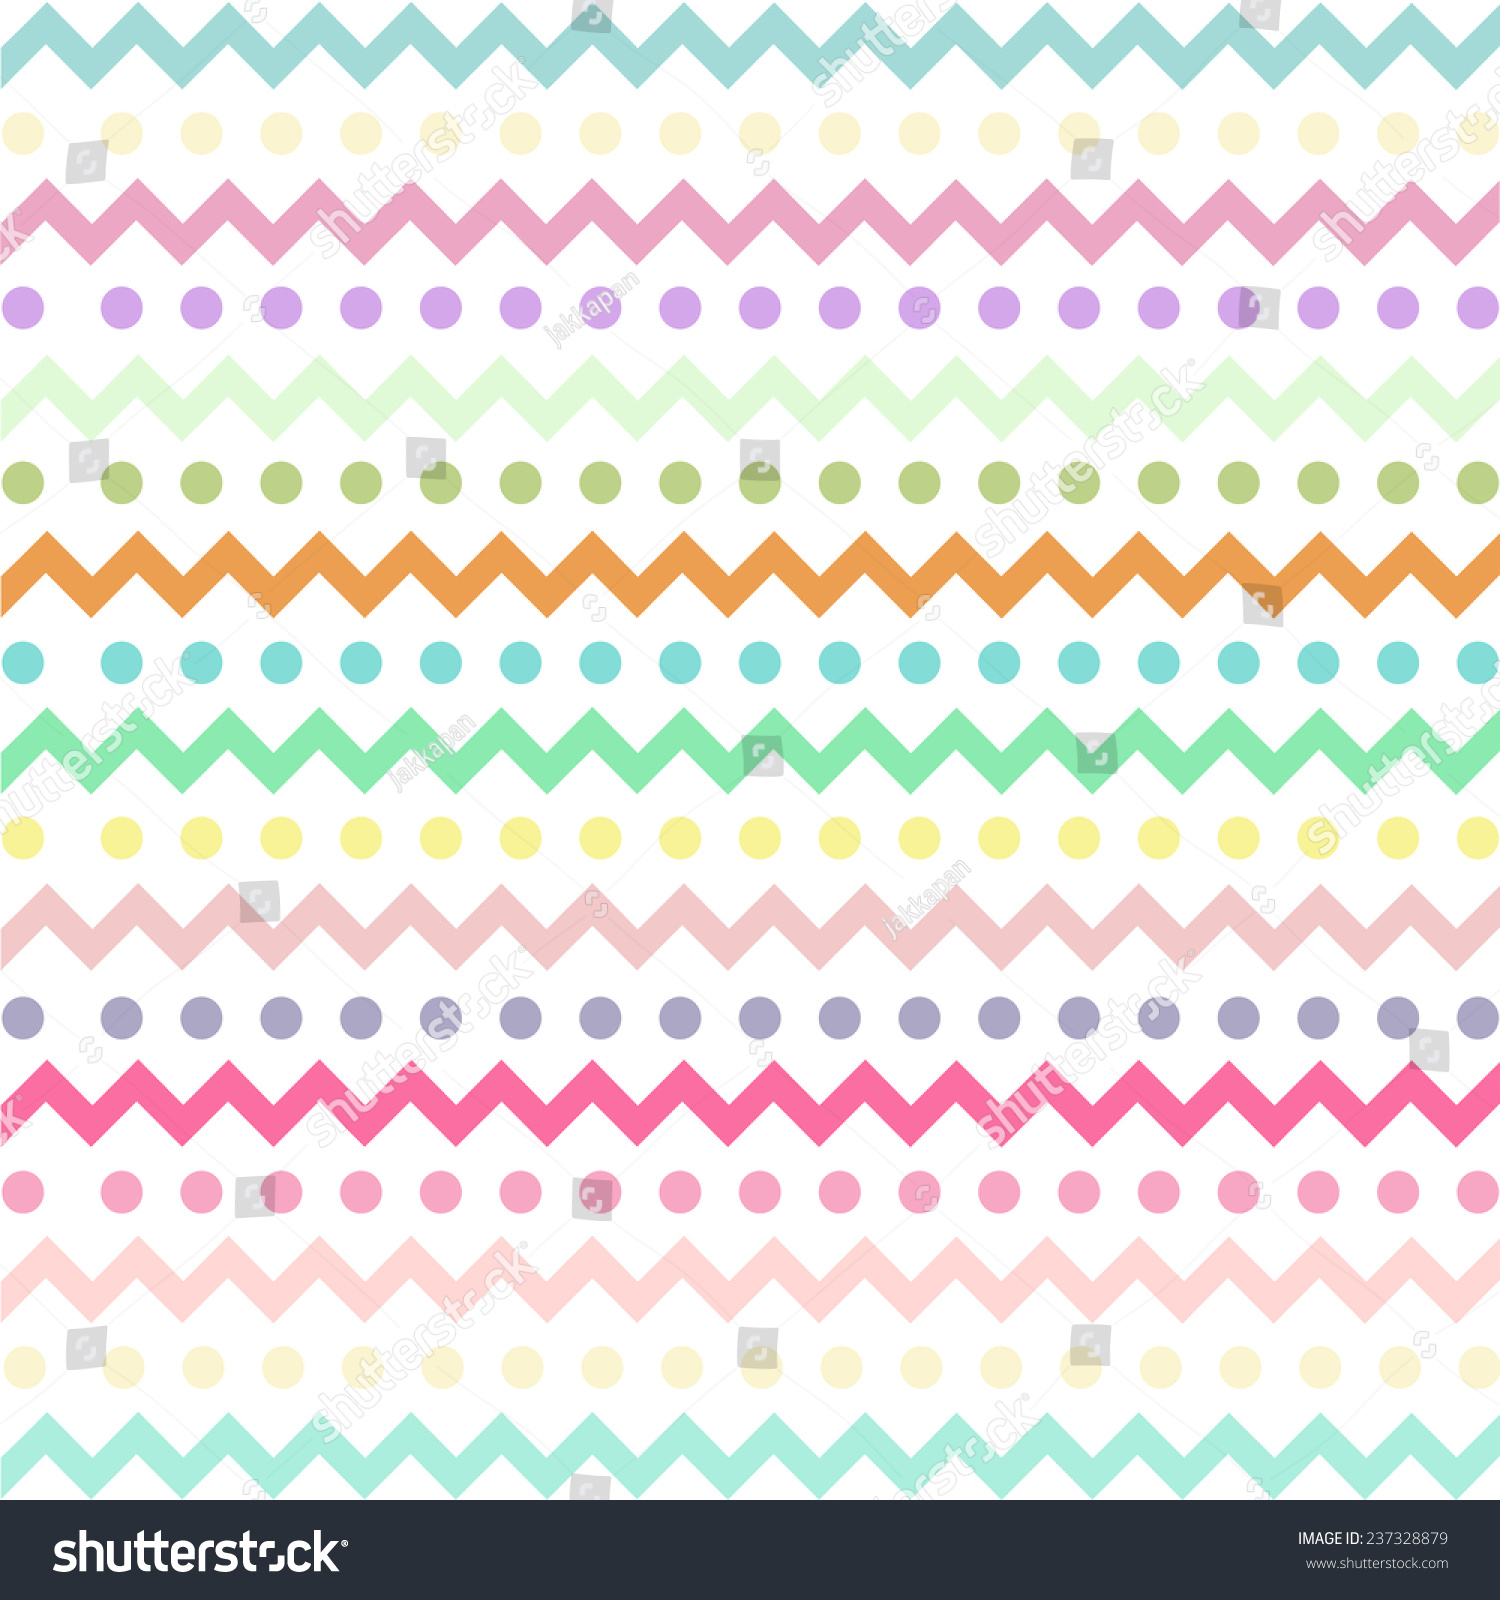 colorful chevron pattern eggs easter day stock vector 237328879 shutterstock. Black Bedroom Furniture Sets. Home Design Ideas